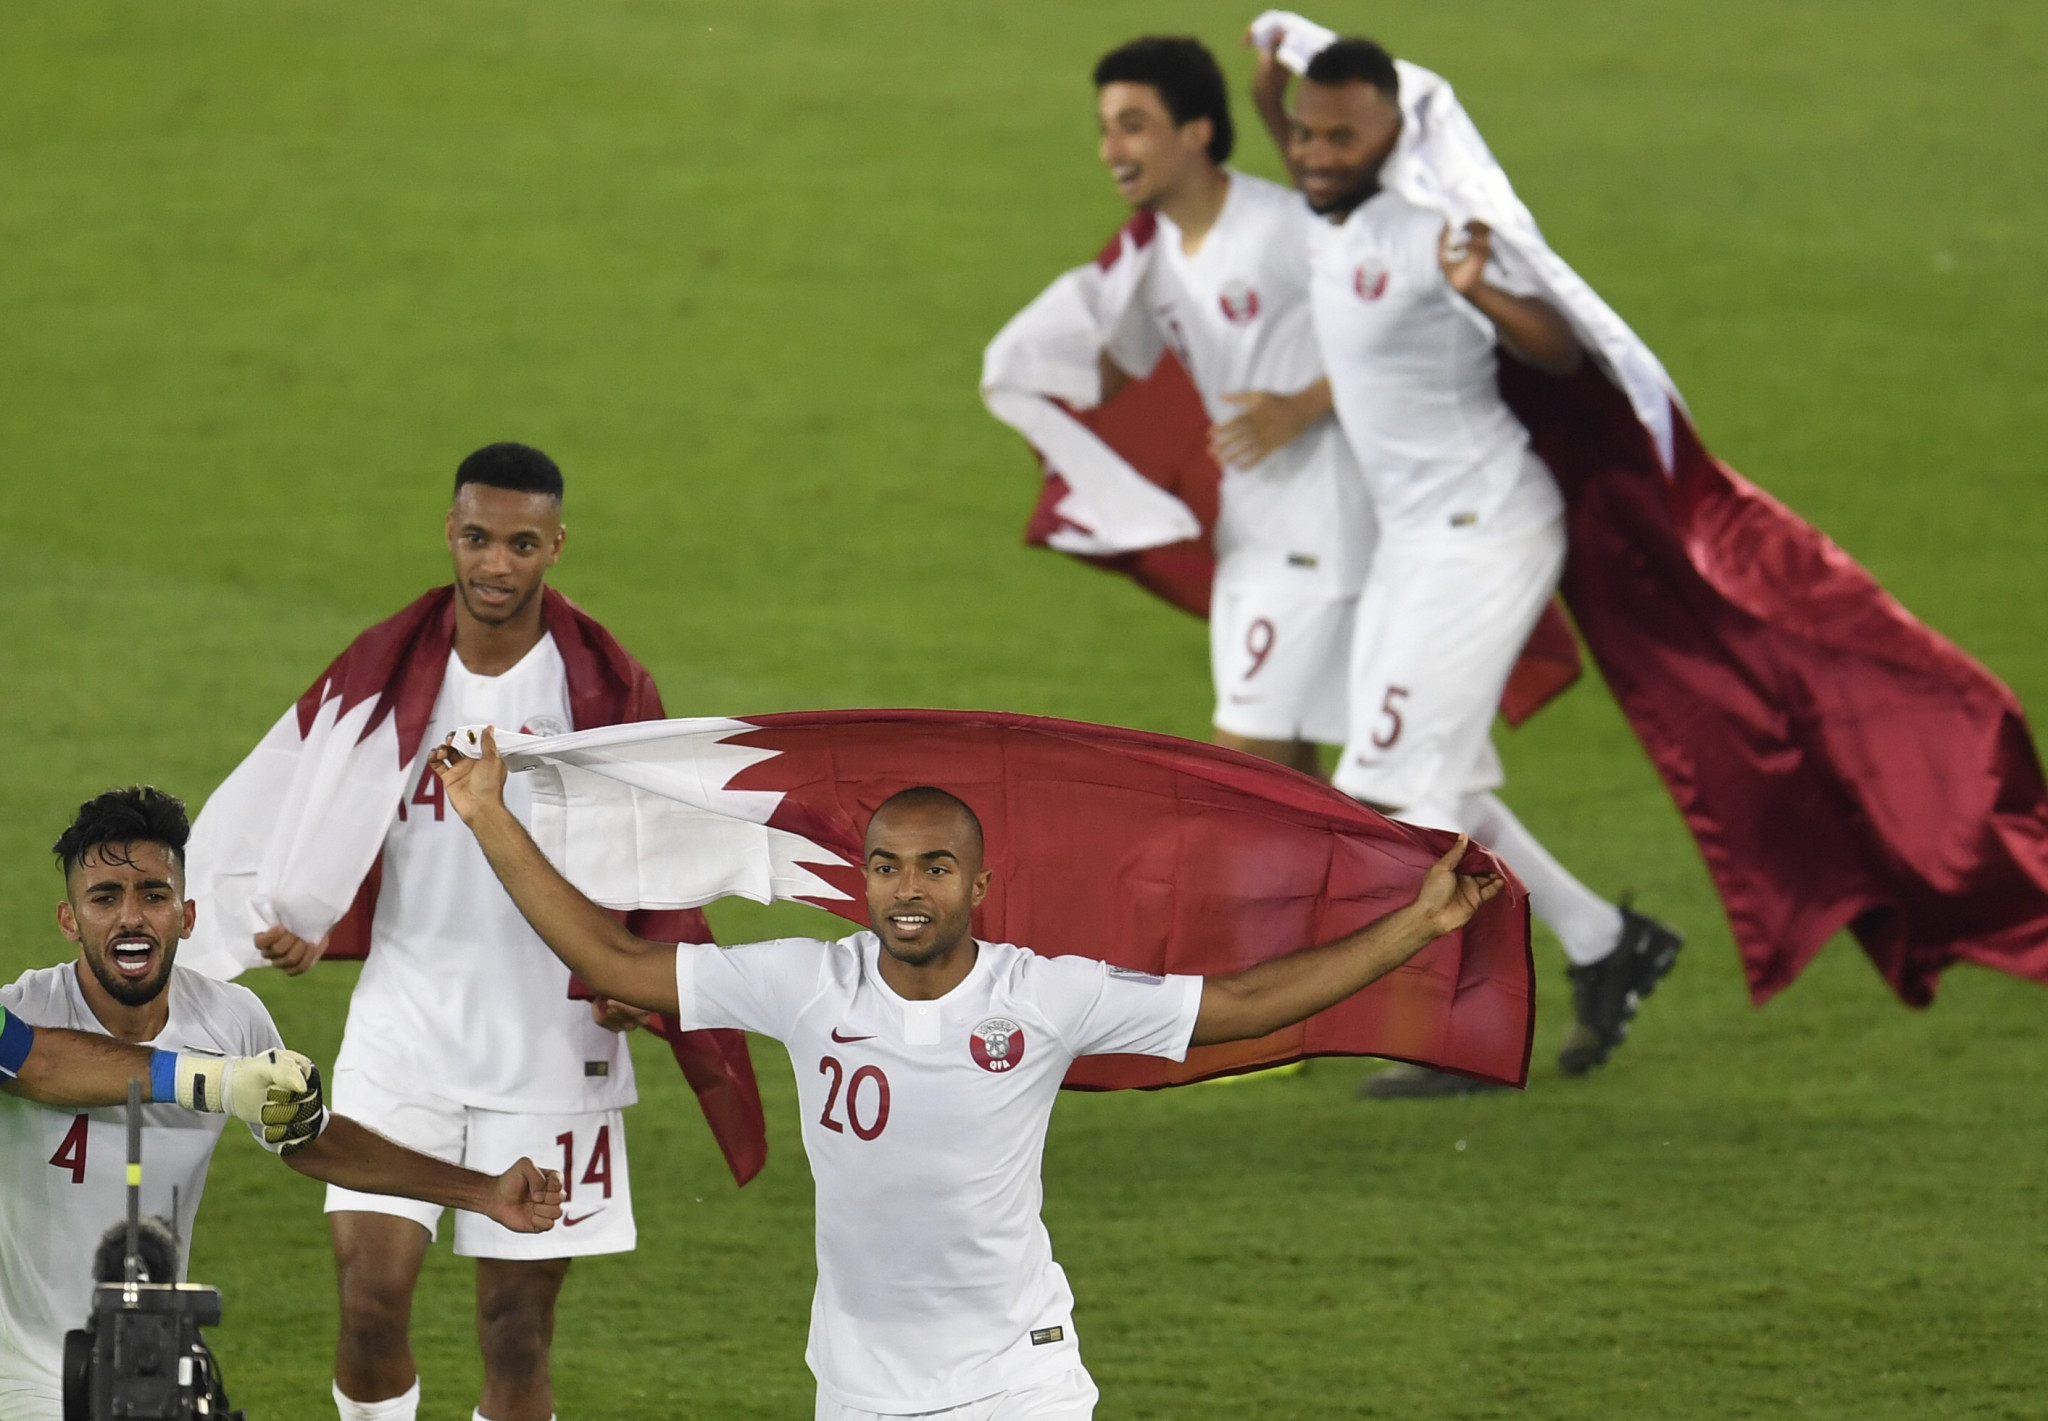 Spectacular overhead kick helps Qatar seal first AFC Asian Cup title